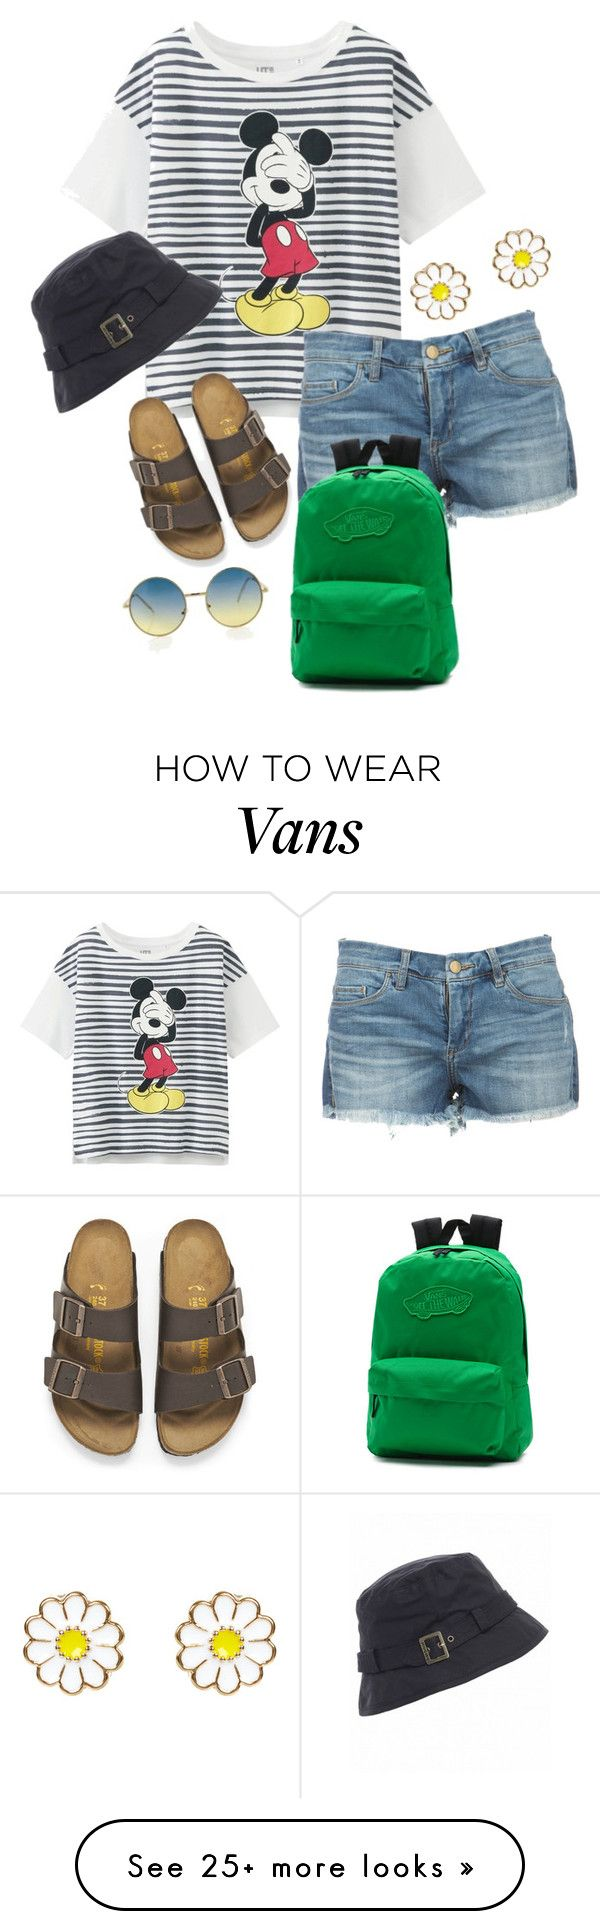 """Mouse & Shorts."" by clothes-wise on Polyvore featuring Uniqlo, Vans, Birkenstock, Barbour and Monsoon"